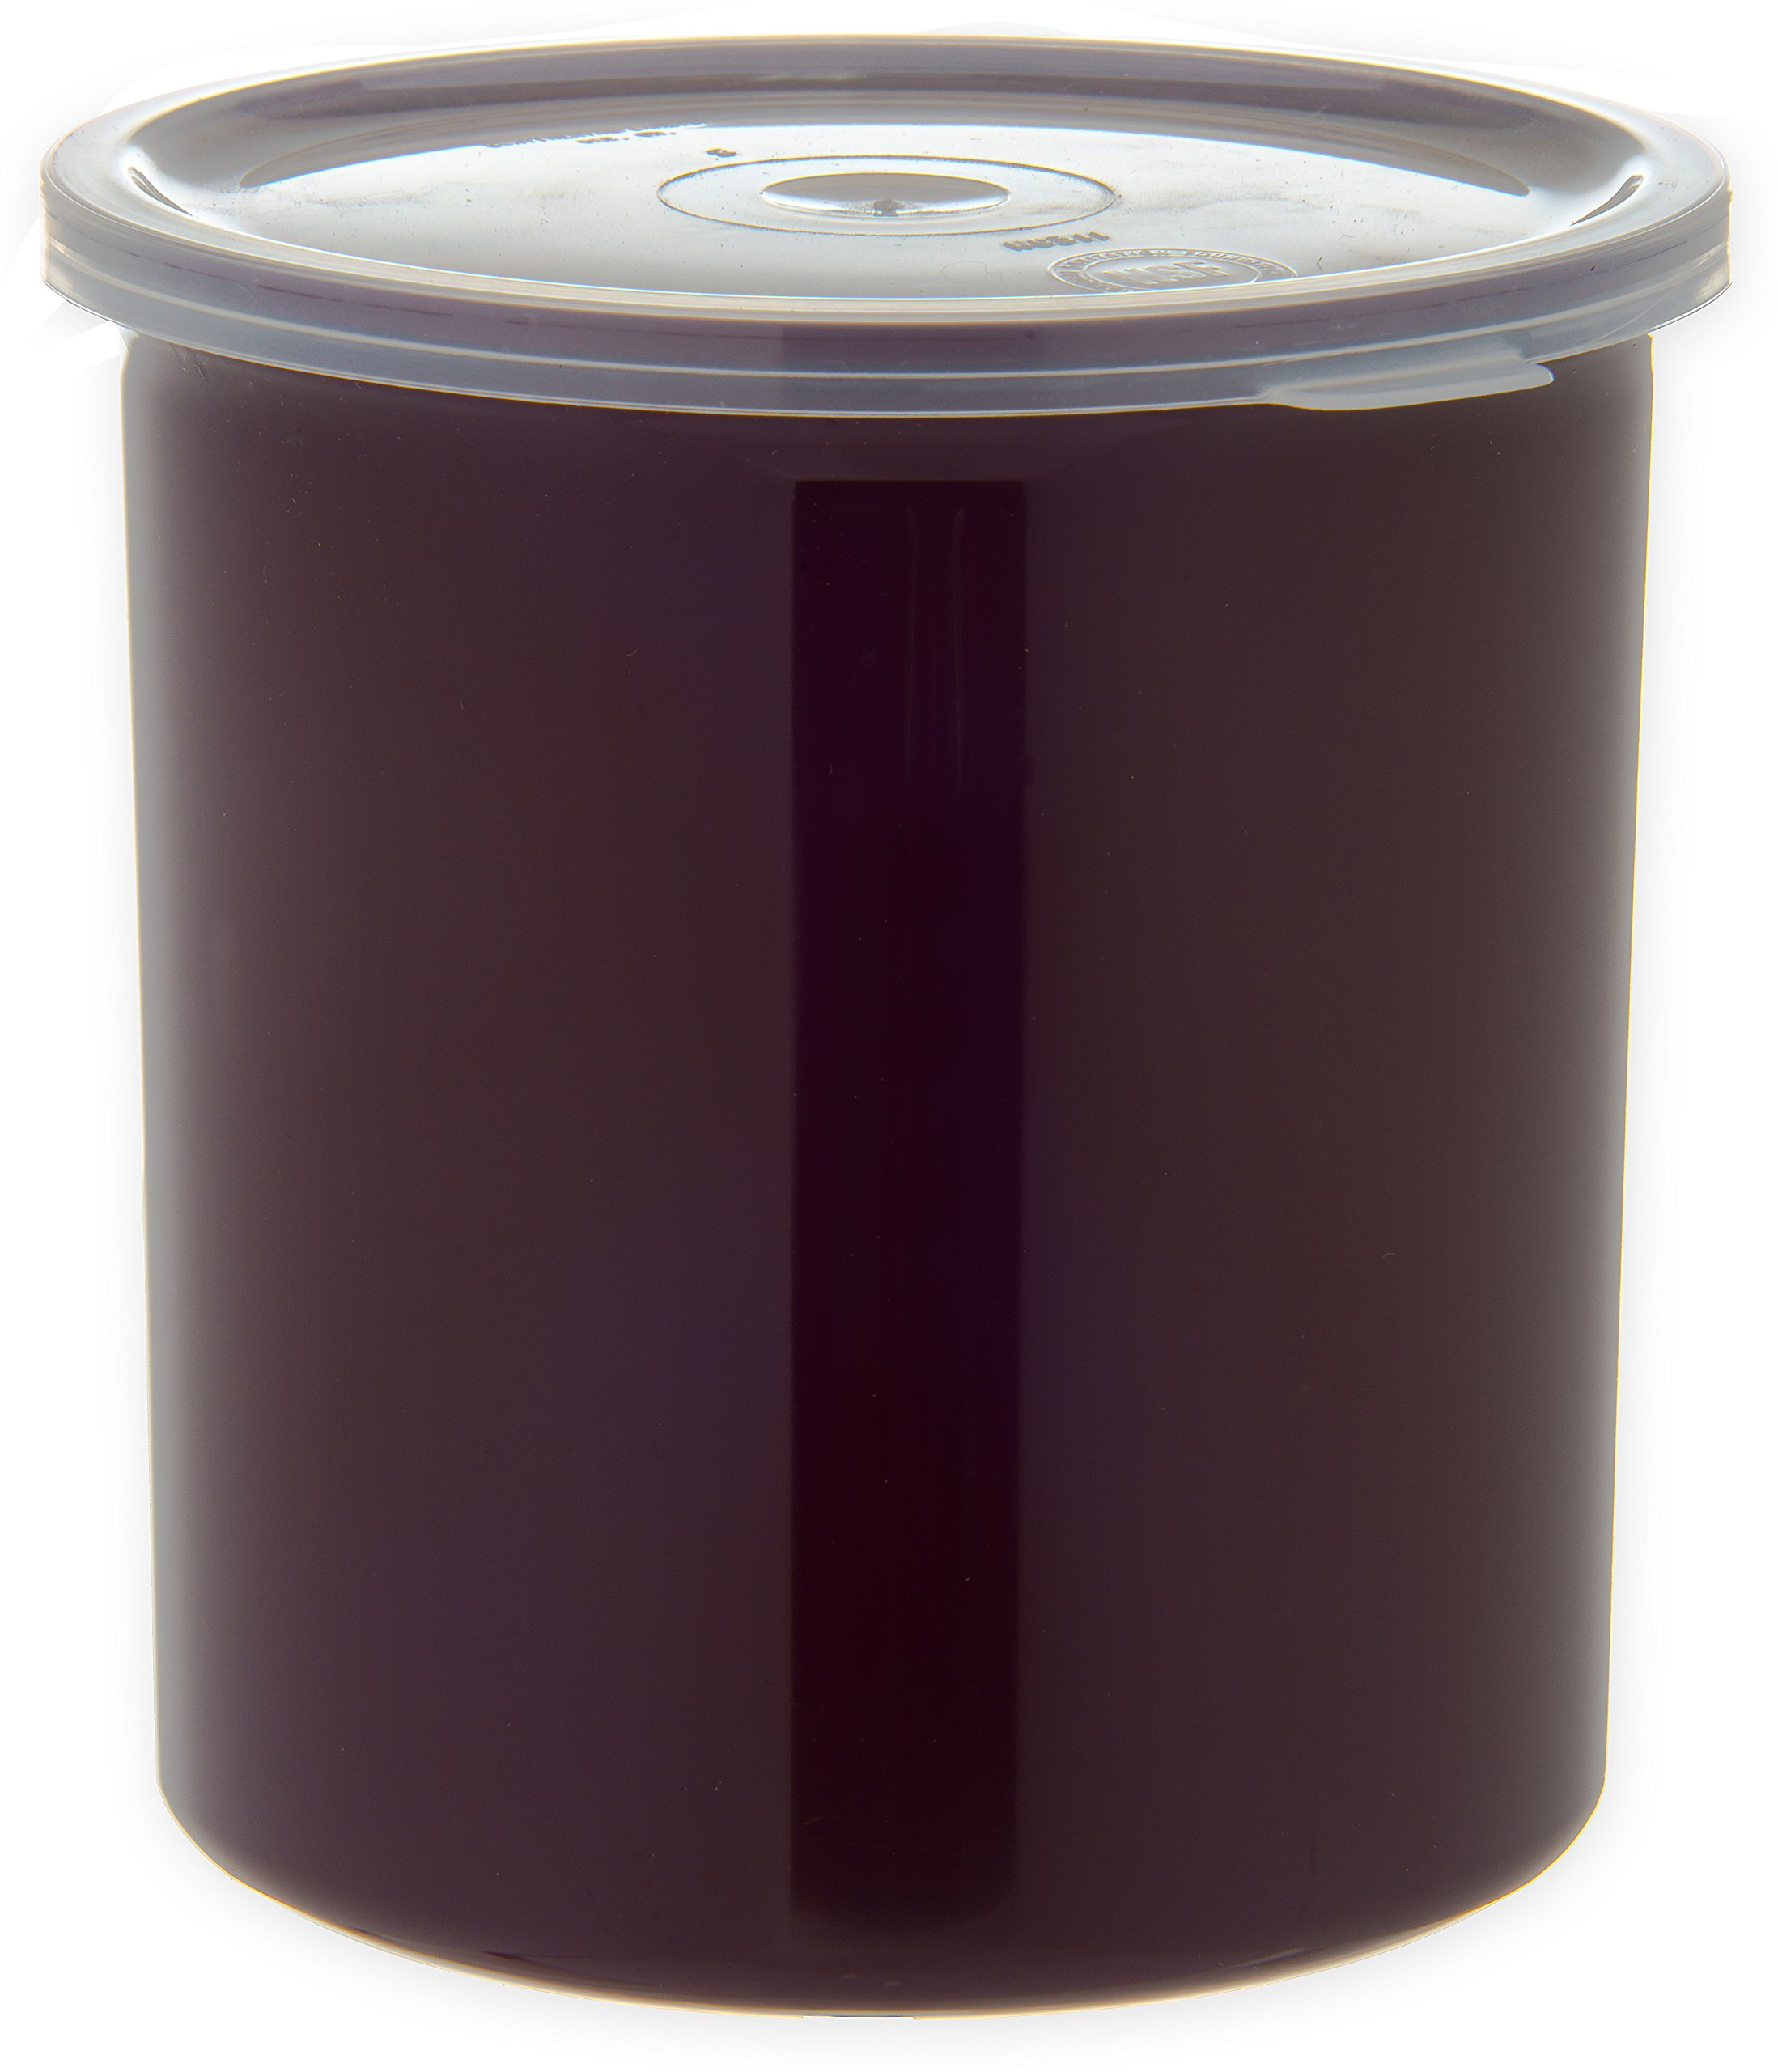 Carlisle 030101 Solid Color Commercial Round Storage with Lid, 1.2 Quart Capacity, Brown (Pack of 12) by Carlisle